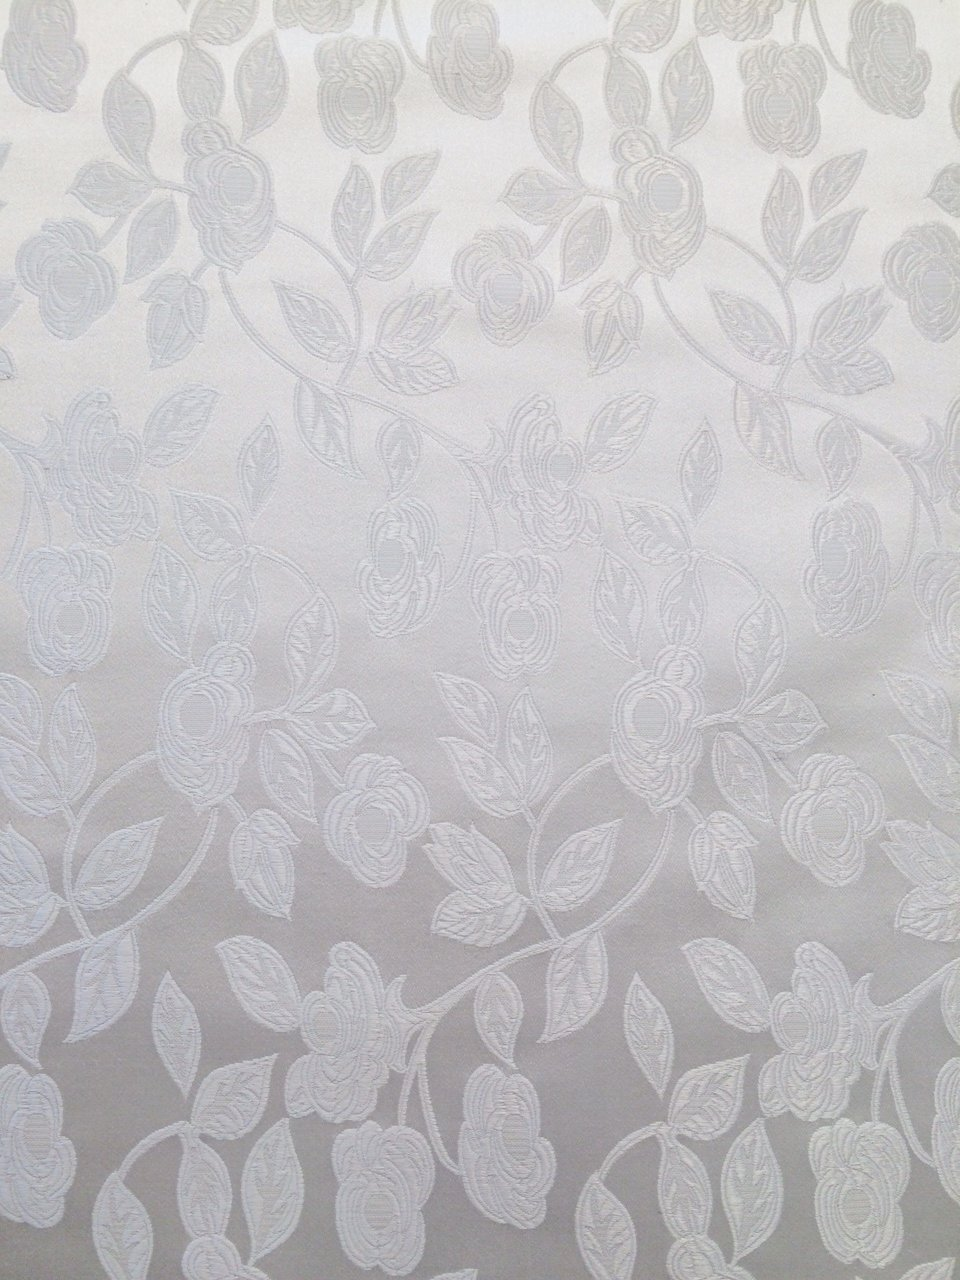 White on White Medium Floral Brocade